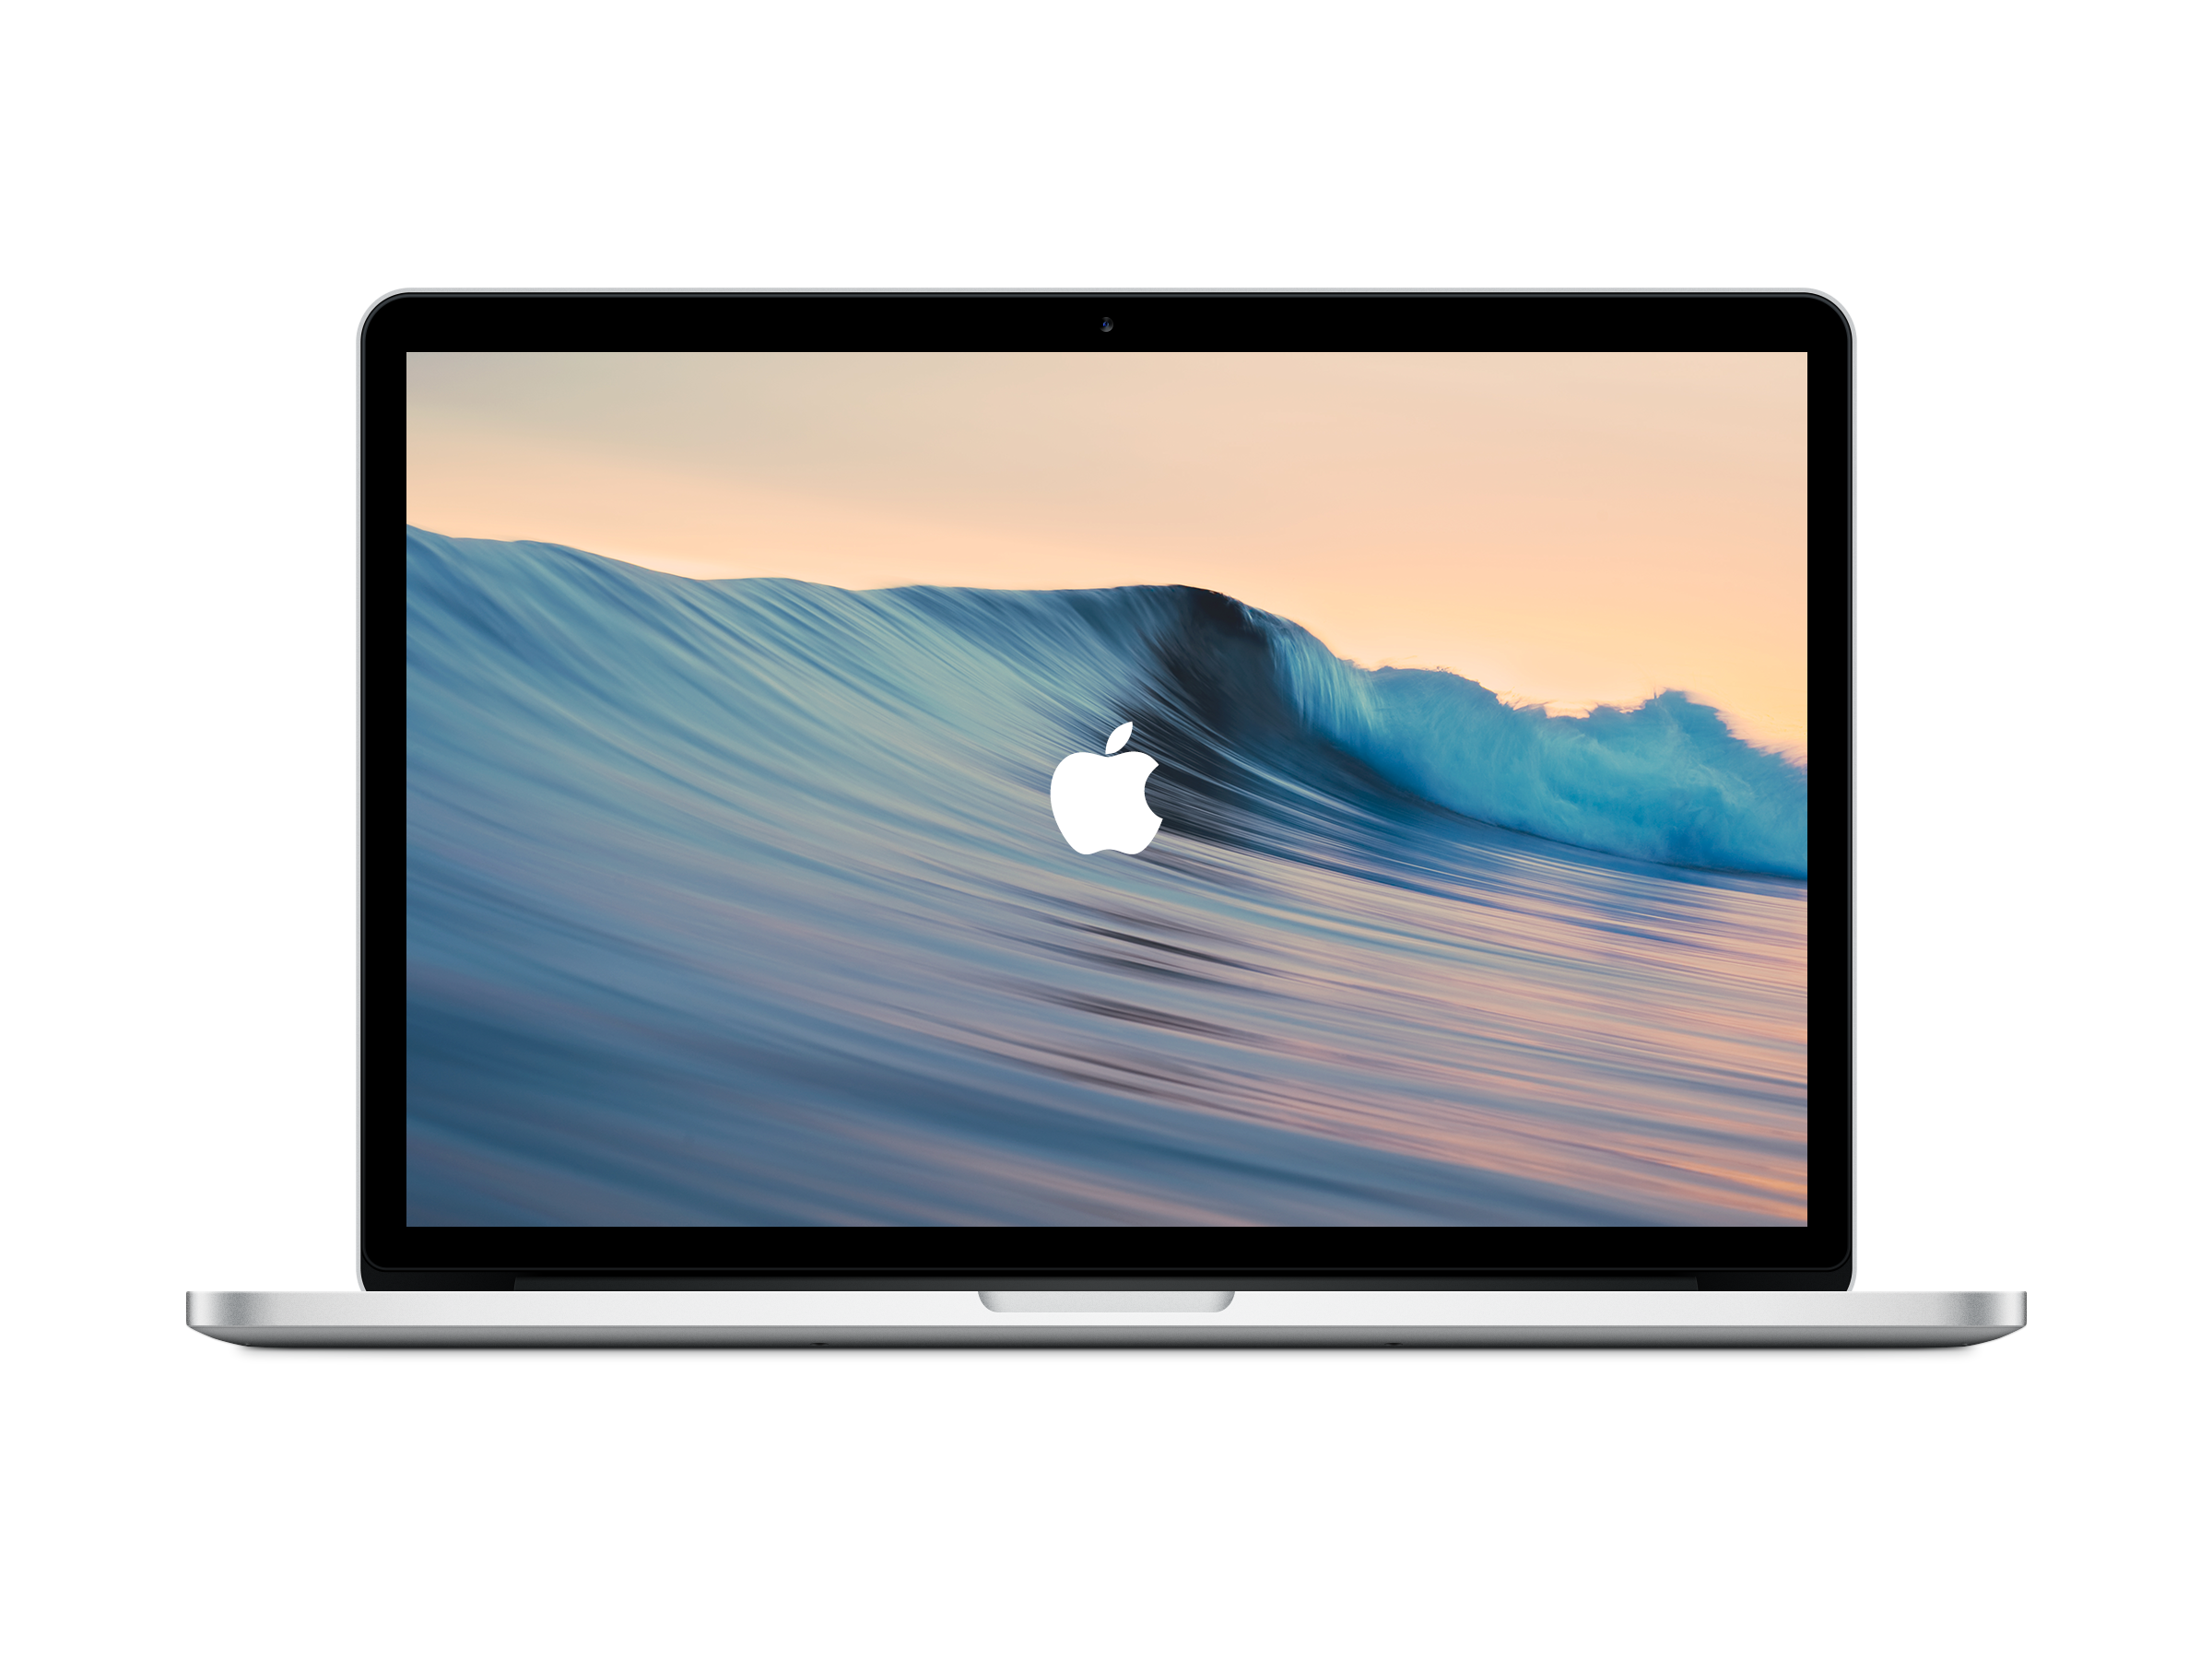 Apple Mockup Pro Drive Air Laptops Disc PNG Image